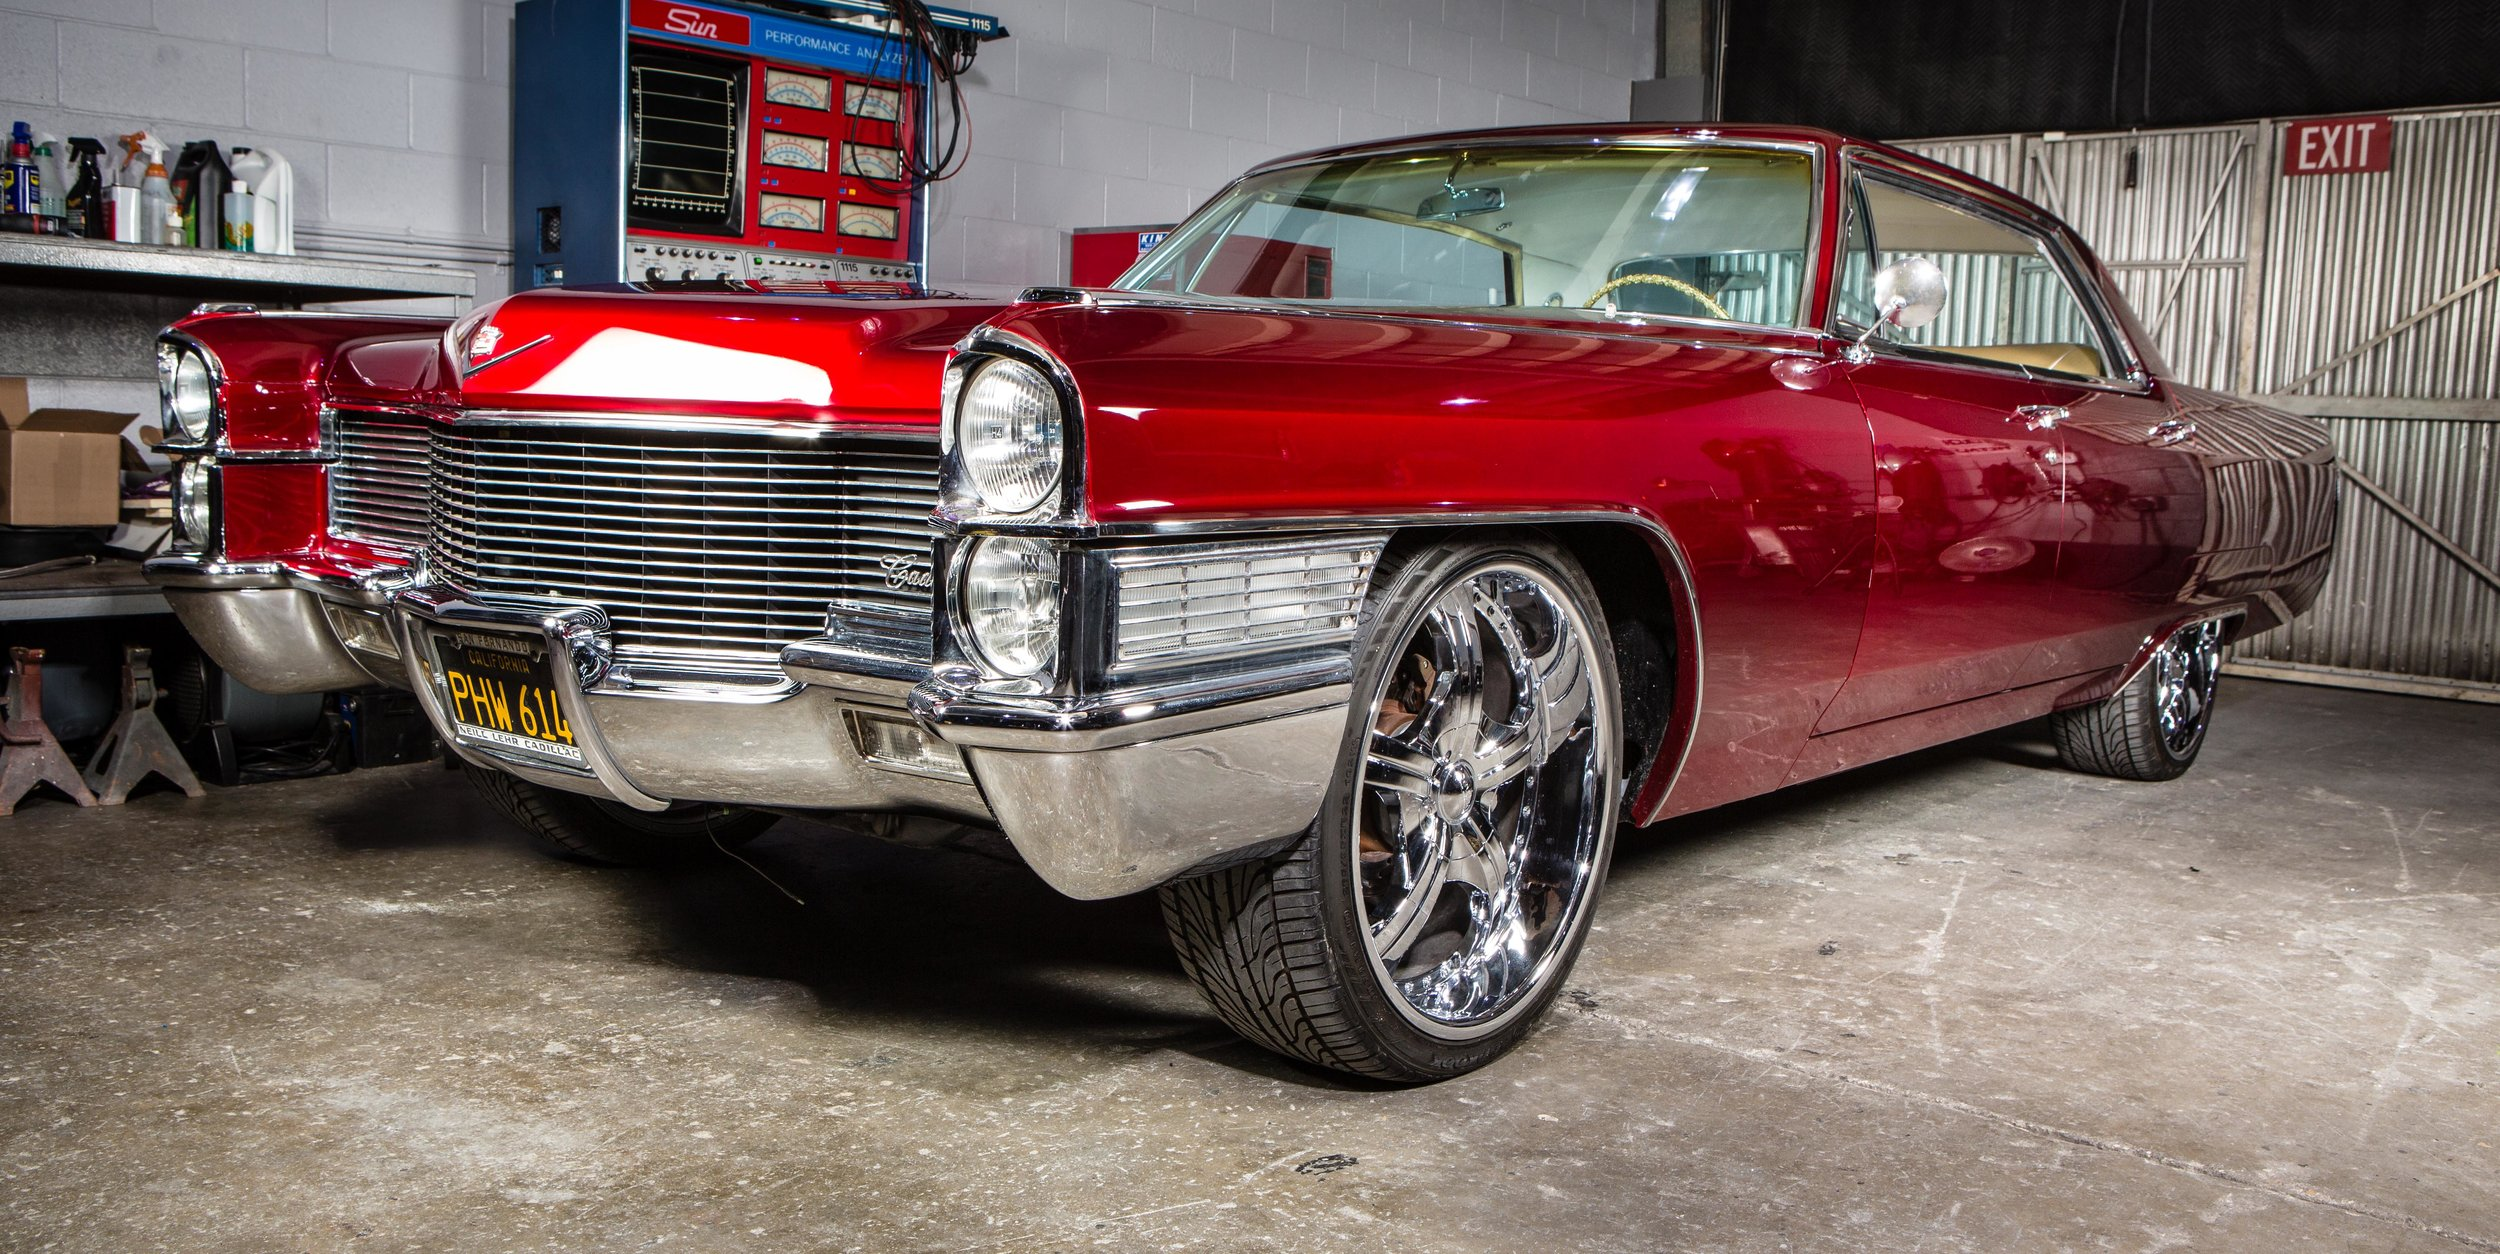 Anaheim Rod and Custom 65 Cadillac Studio Shots (30 of 69).jpg